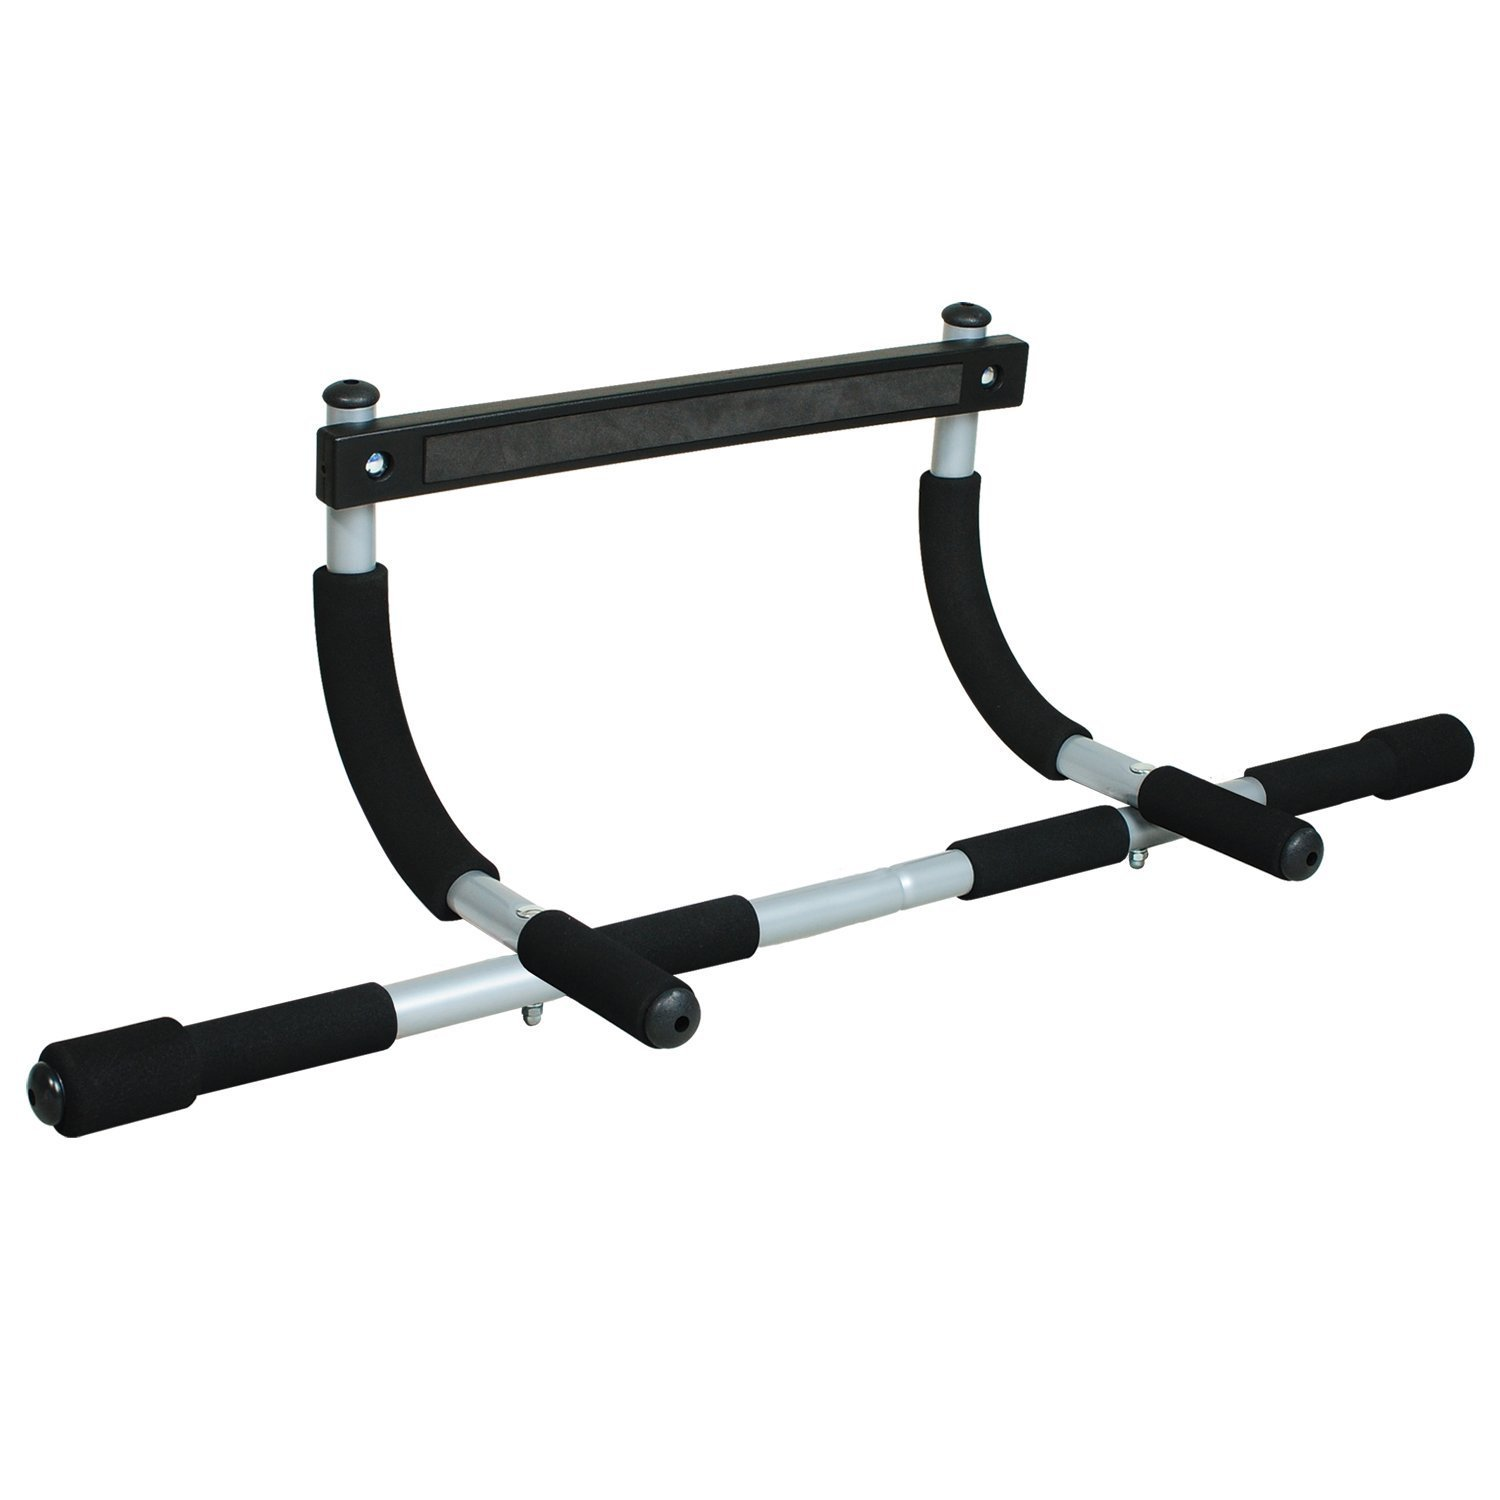 BESPOLITAN SPORTS CHIN UP BAR Total Upper Body Workout Bar Chest,Back,Triceps ,Biceps by Bespolitan Sports